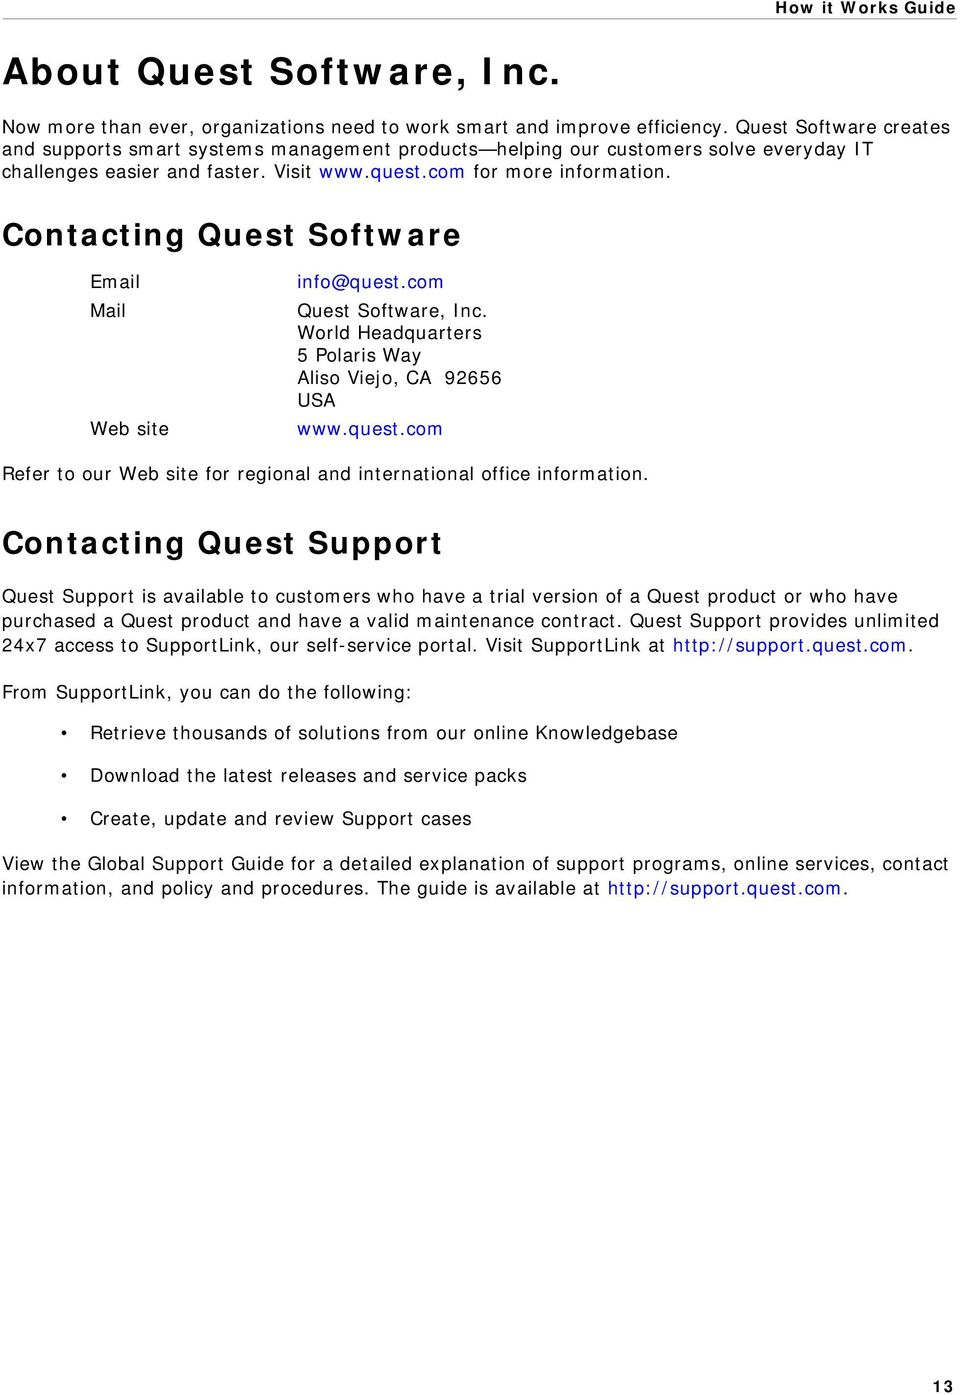 Contacting Quest Software Email Mail Web site info@quest.com Quest Software, Inc. World Headquarters 5 Polaris Way Aliso Viejo, CA 92656 USA www.quest.com Refer to our Web site for regional and international office information.